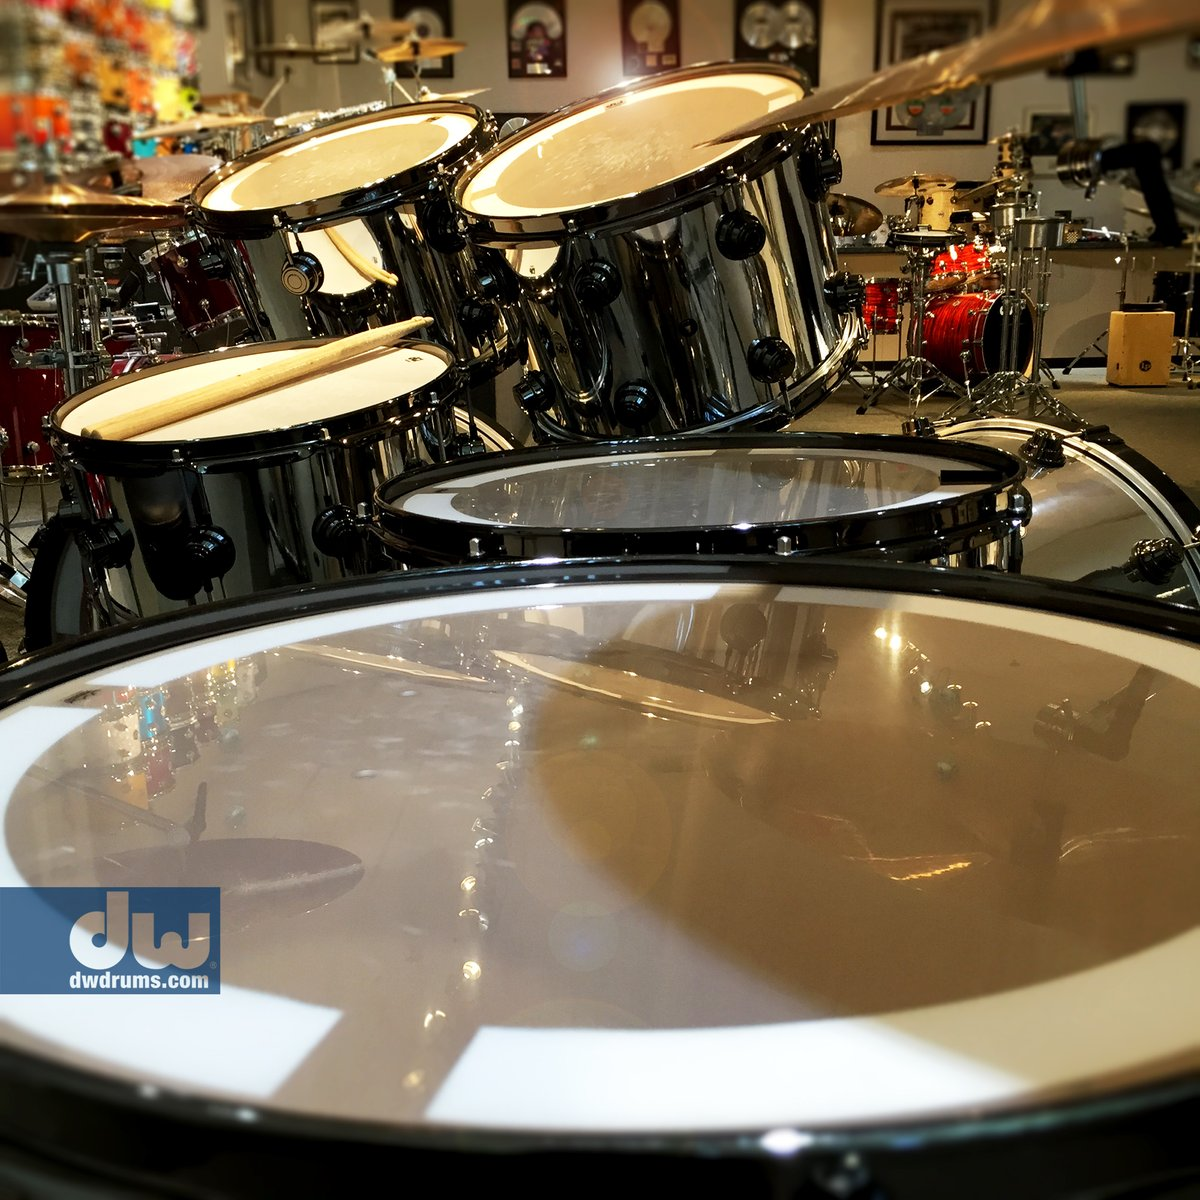 What instantly pops in your mind when you see this? #dwdrums <br>http://pic.twitter.com/1DTo8Q7qZk